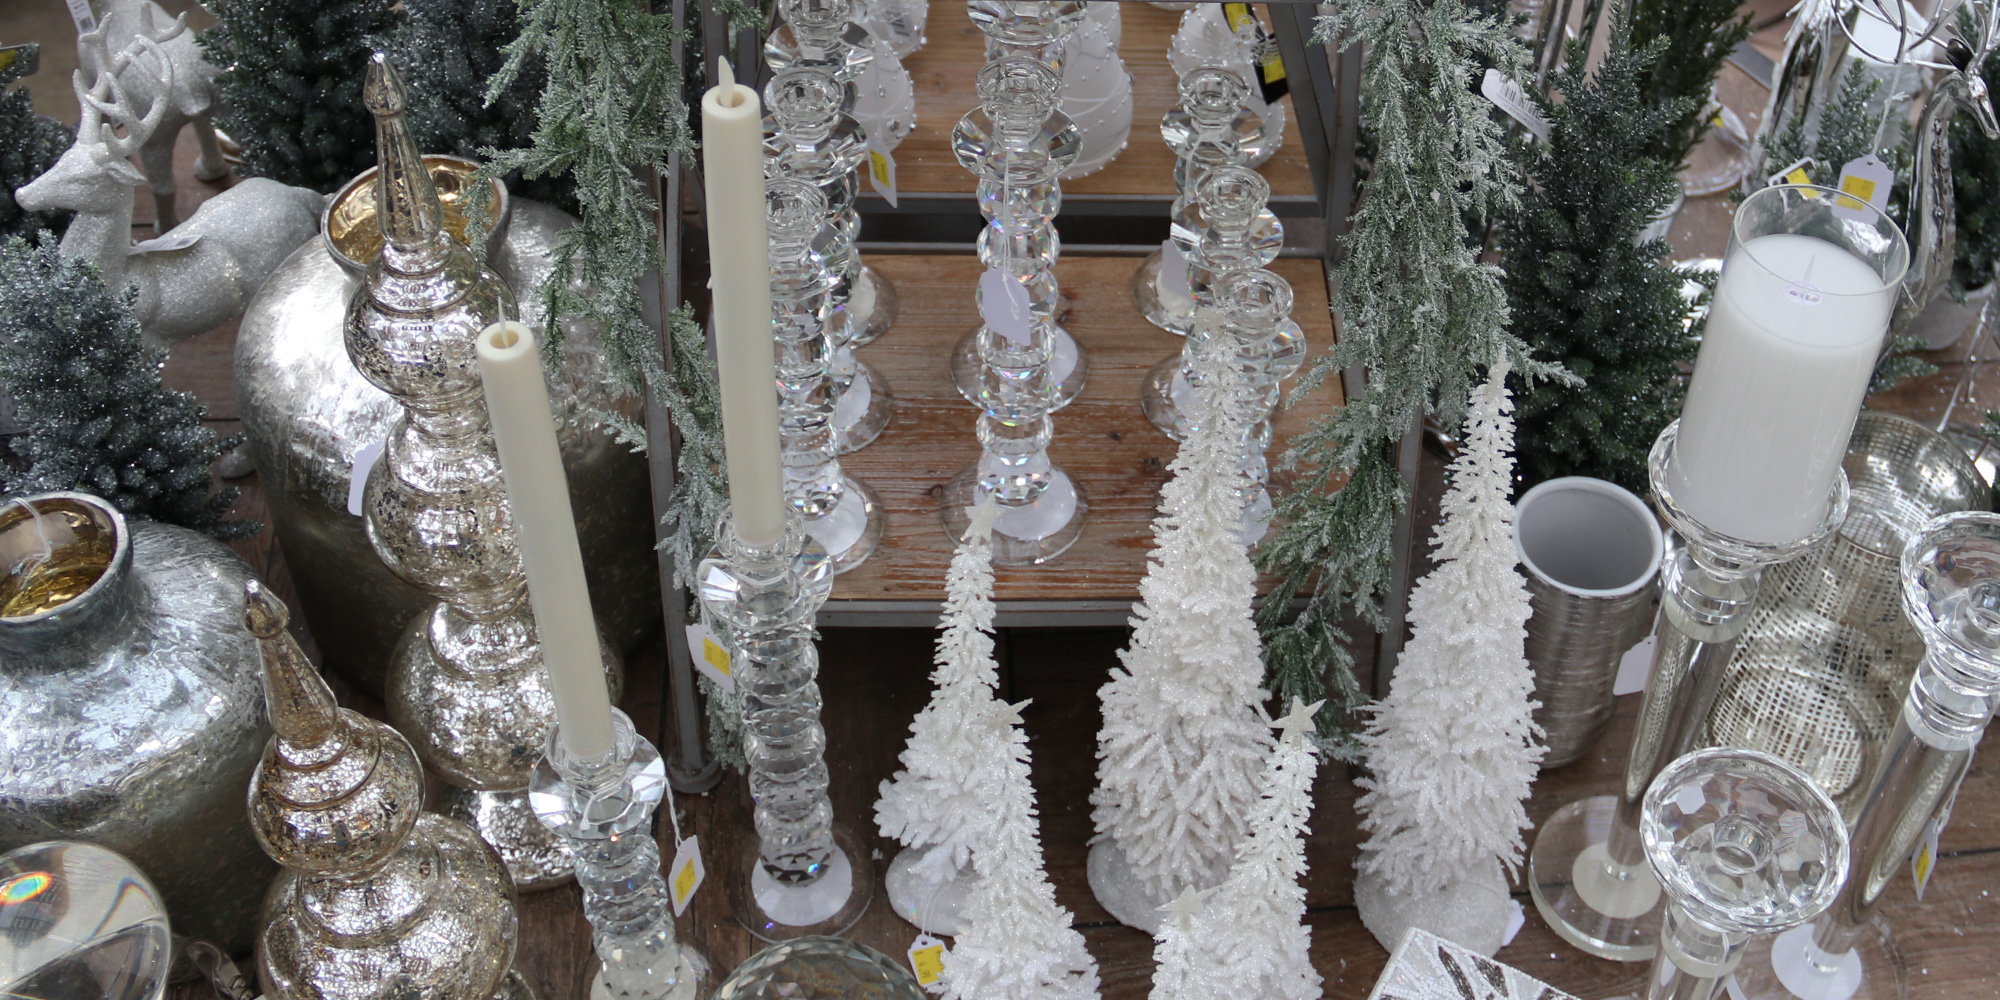 Glass candlesticks and holders